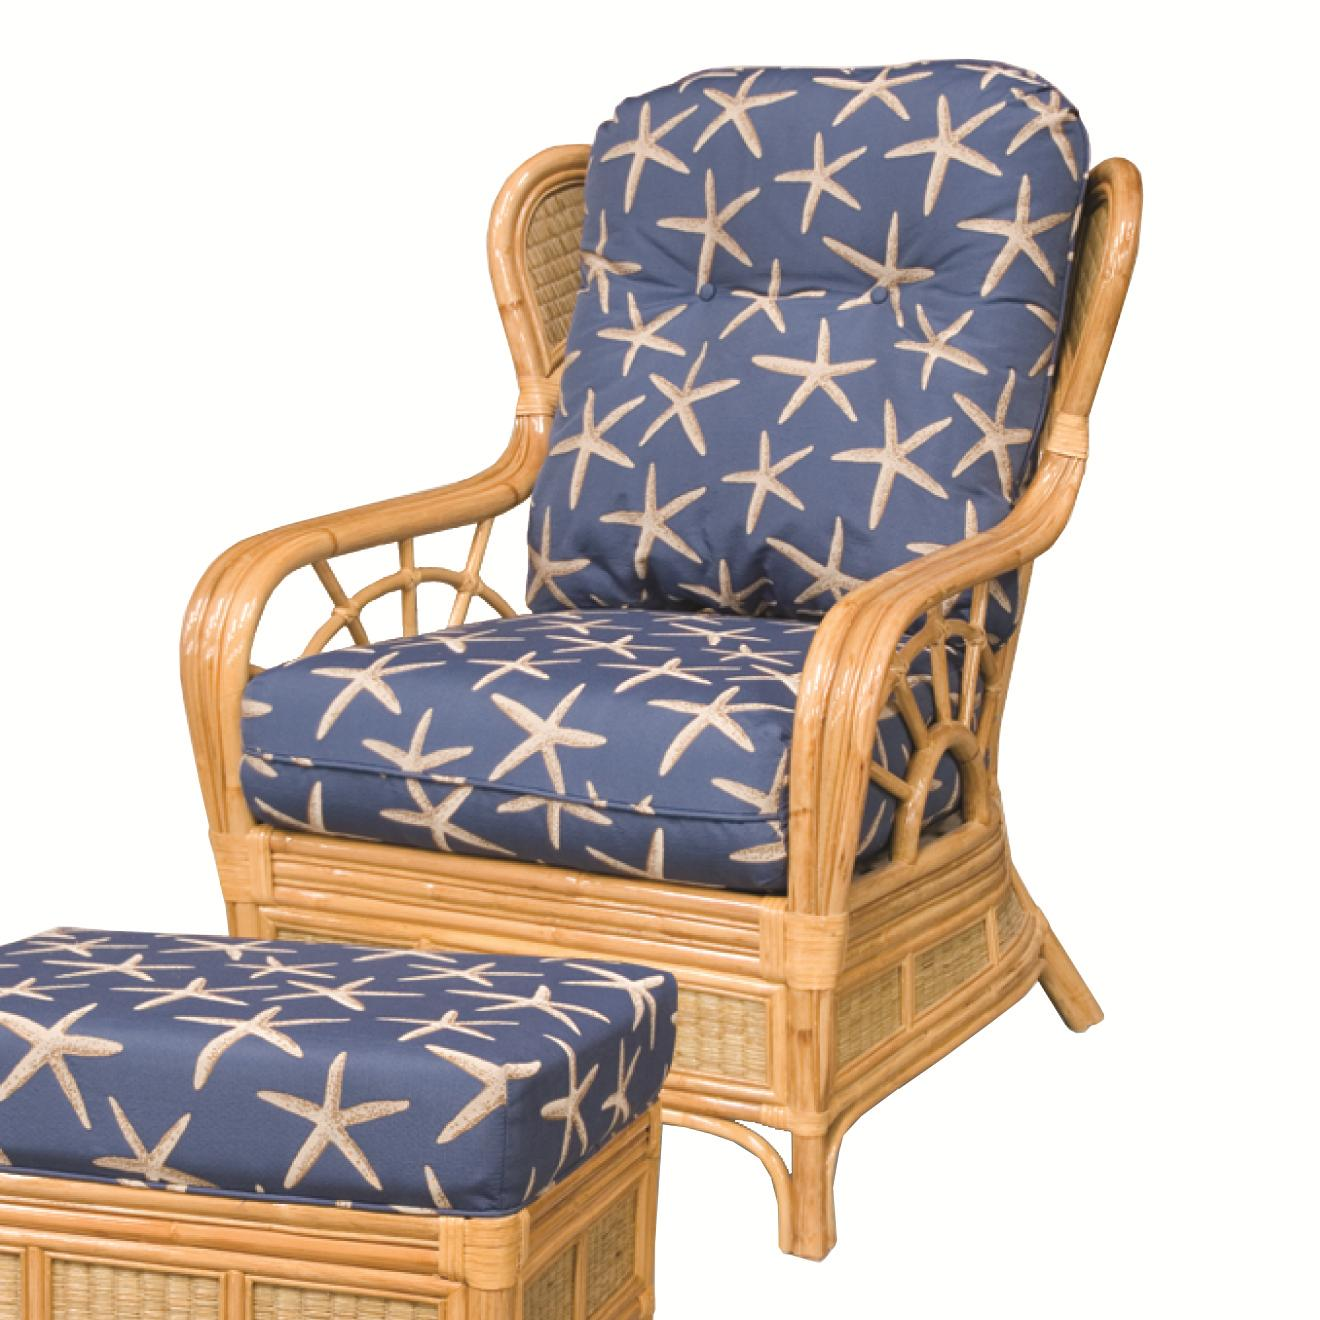 Wicker Rattan Upholstered Chair